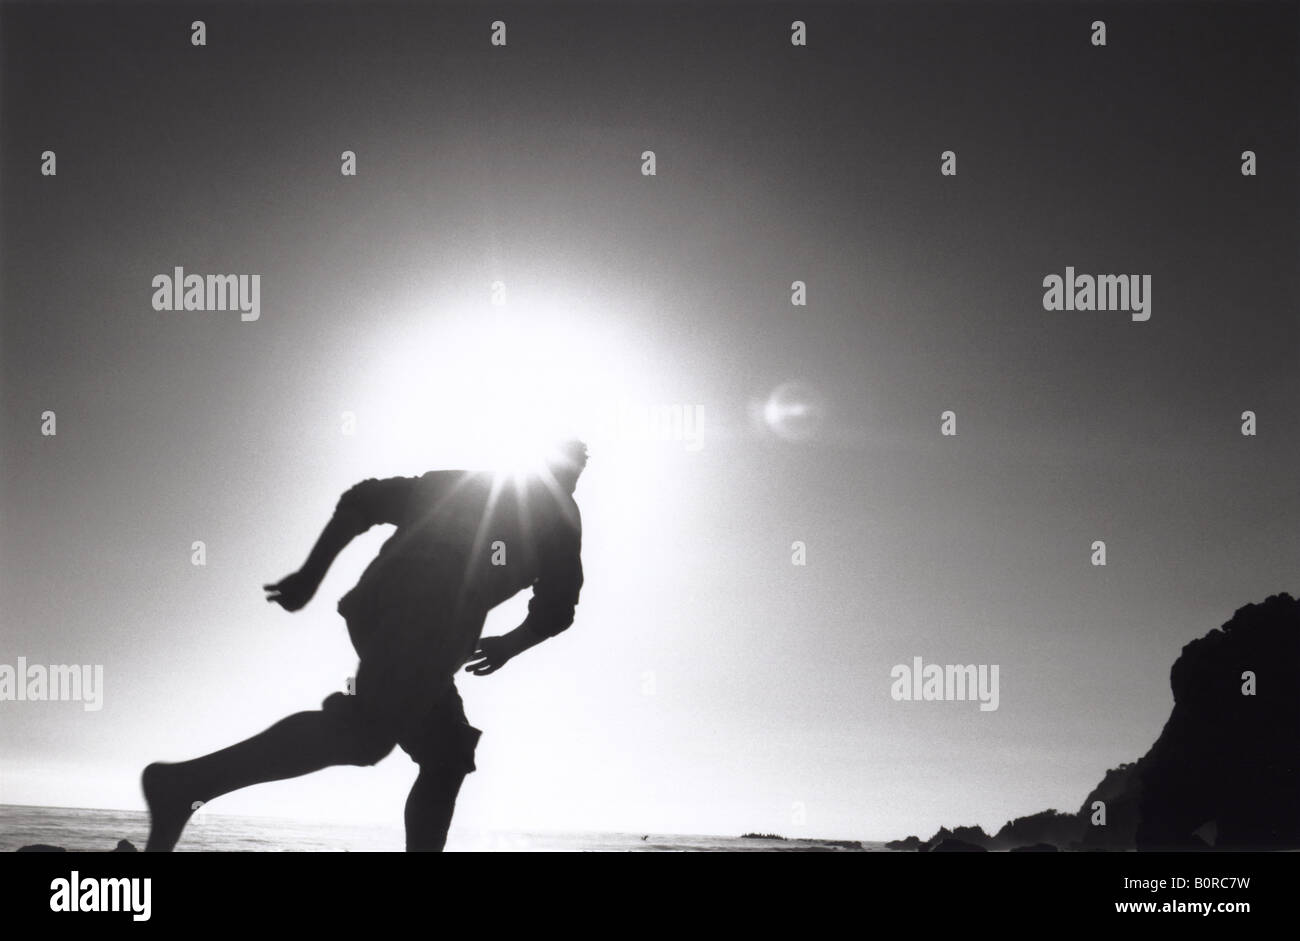 silhouette of man running on beach with sun behind his head flare glare blocking glow black and white - Stock Image